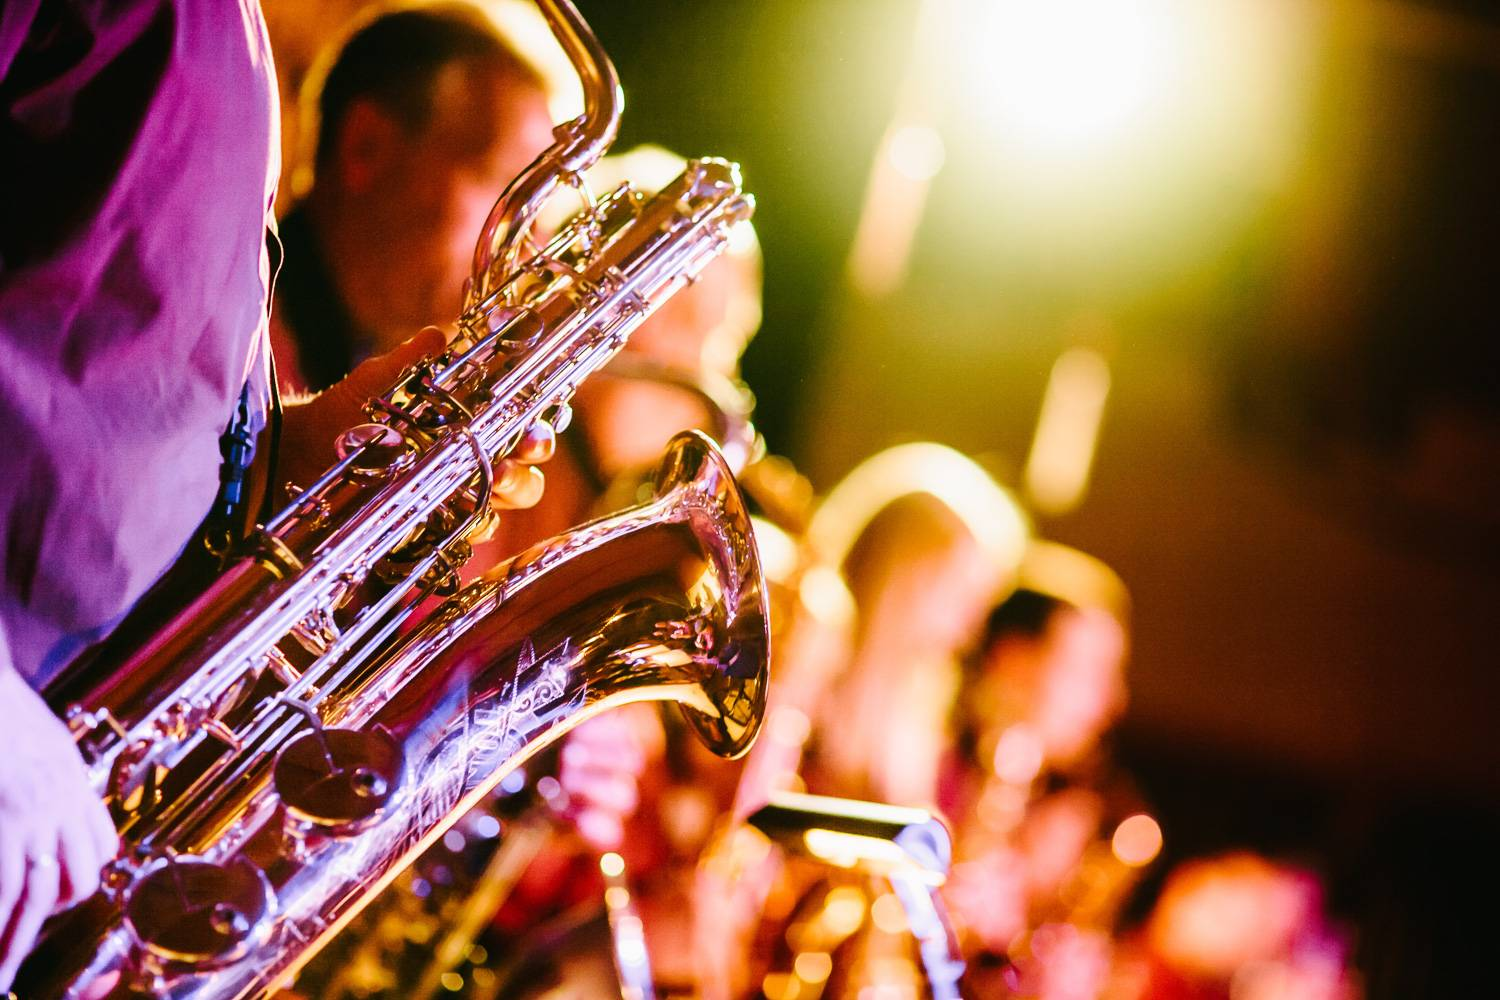 Image de musiciens de jazz jouant du saxophone (Crédit Photo : Unsplash)